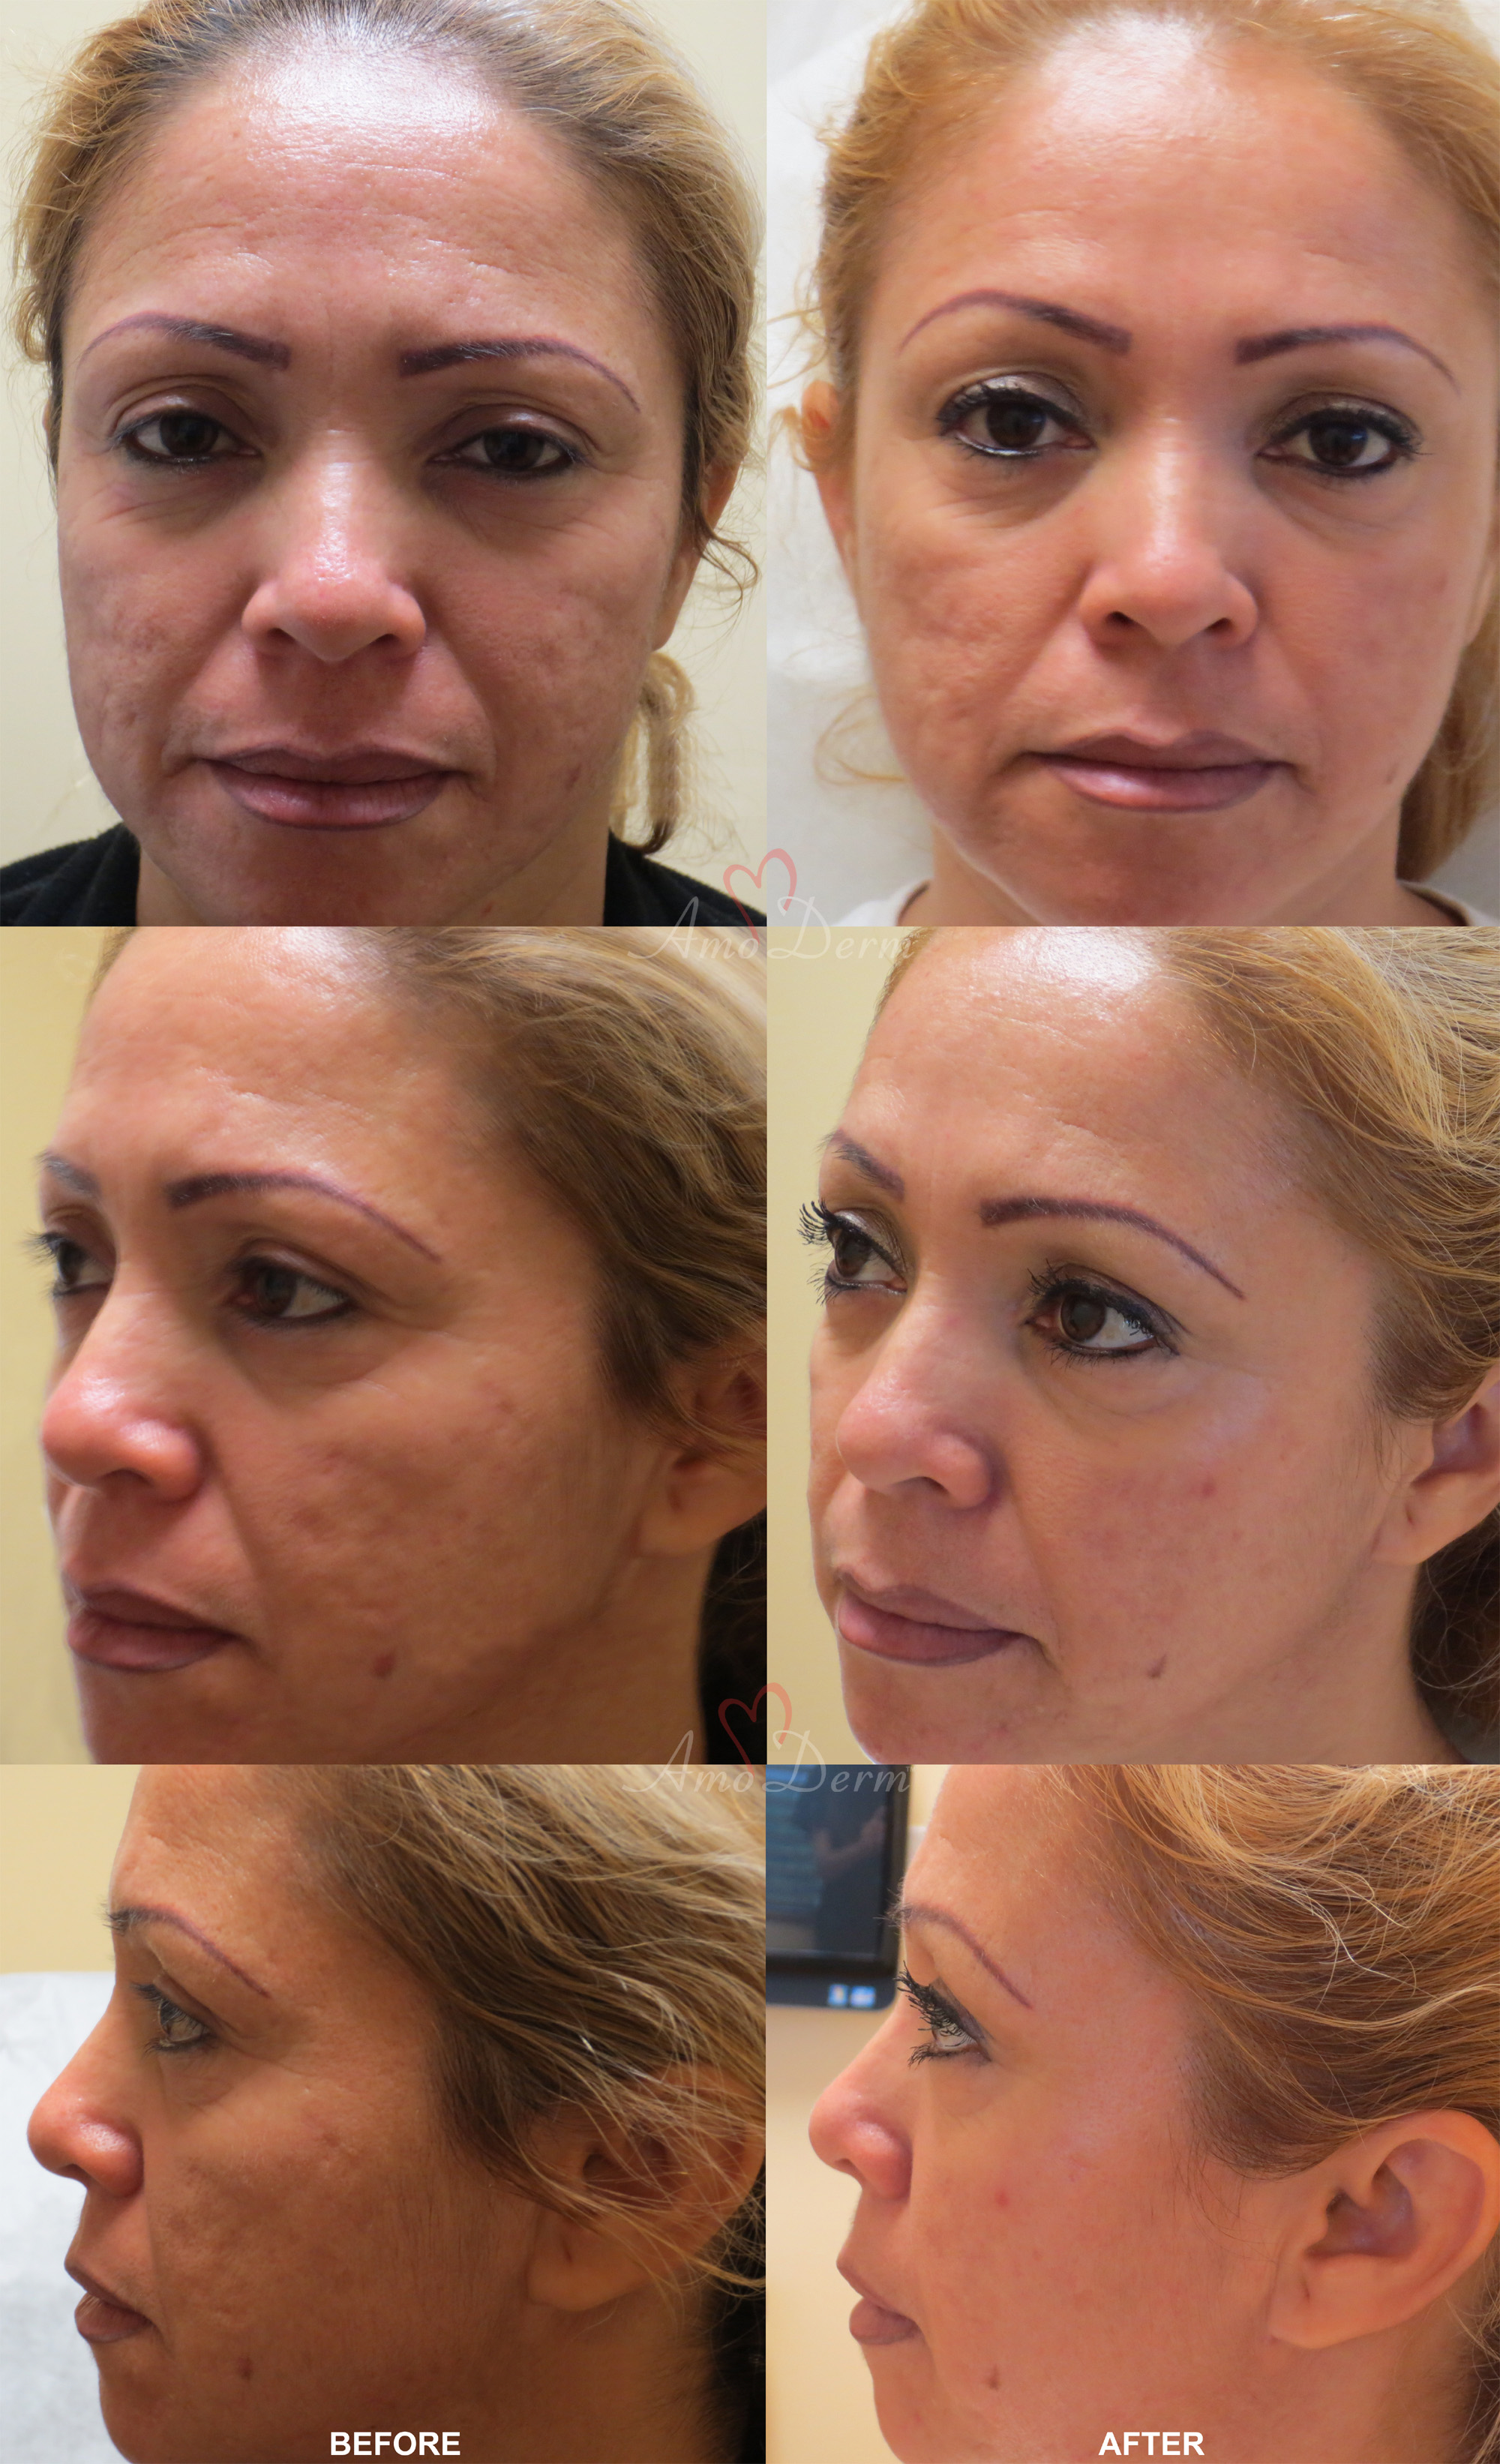 Fractional CO2 Laser Treatment - before and after pictures with real patients